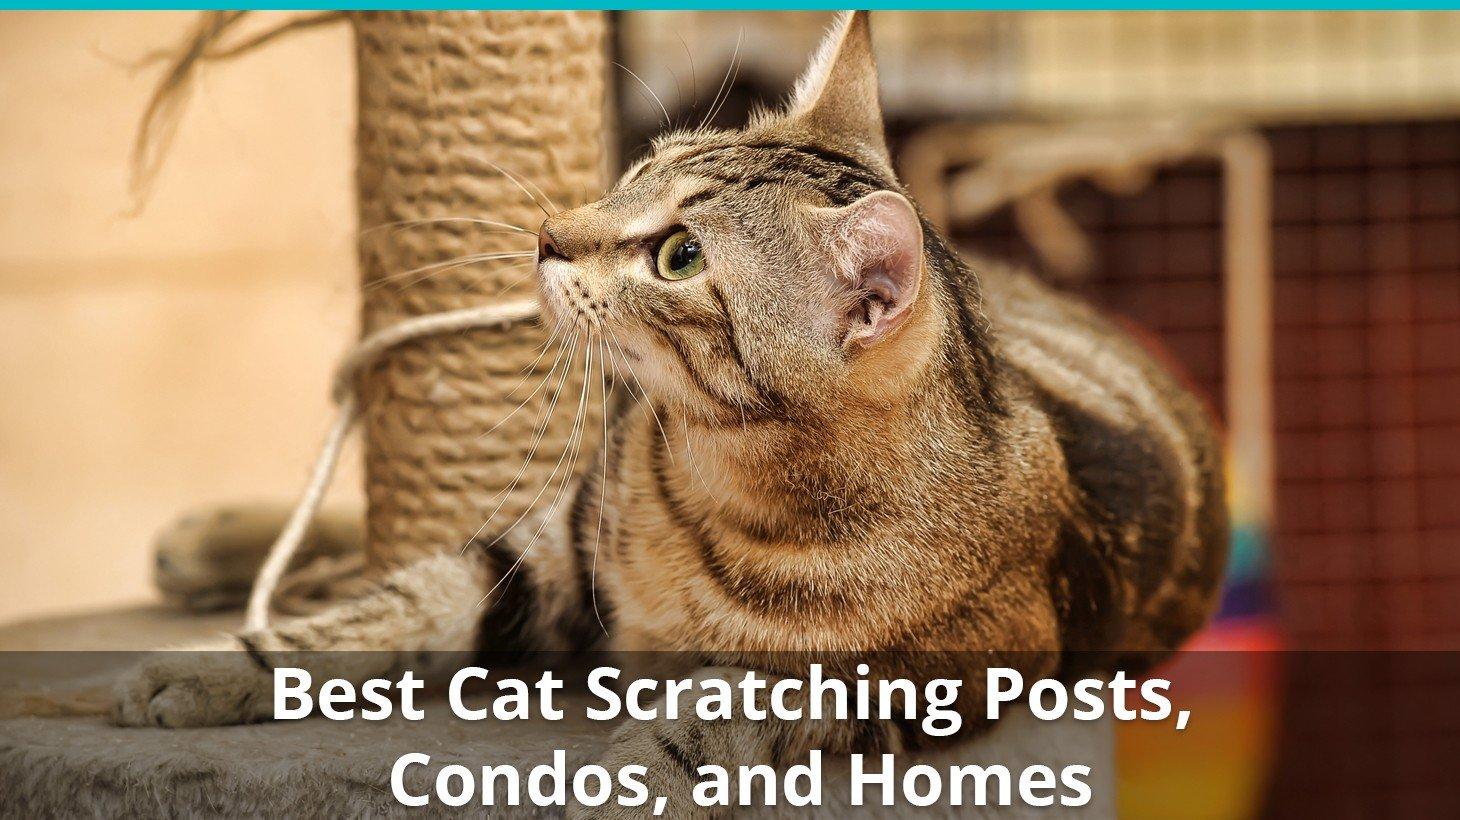 Best Cat Scratching Posts Towers Condos And More